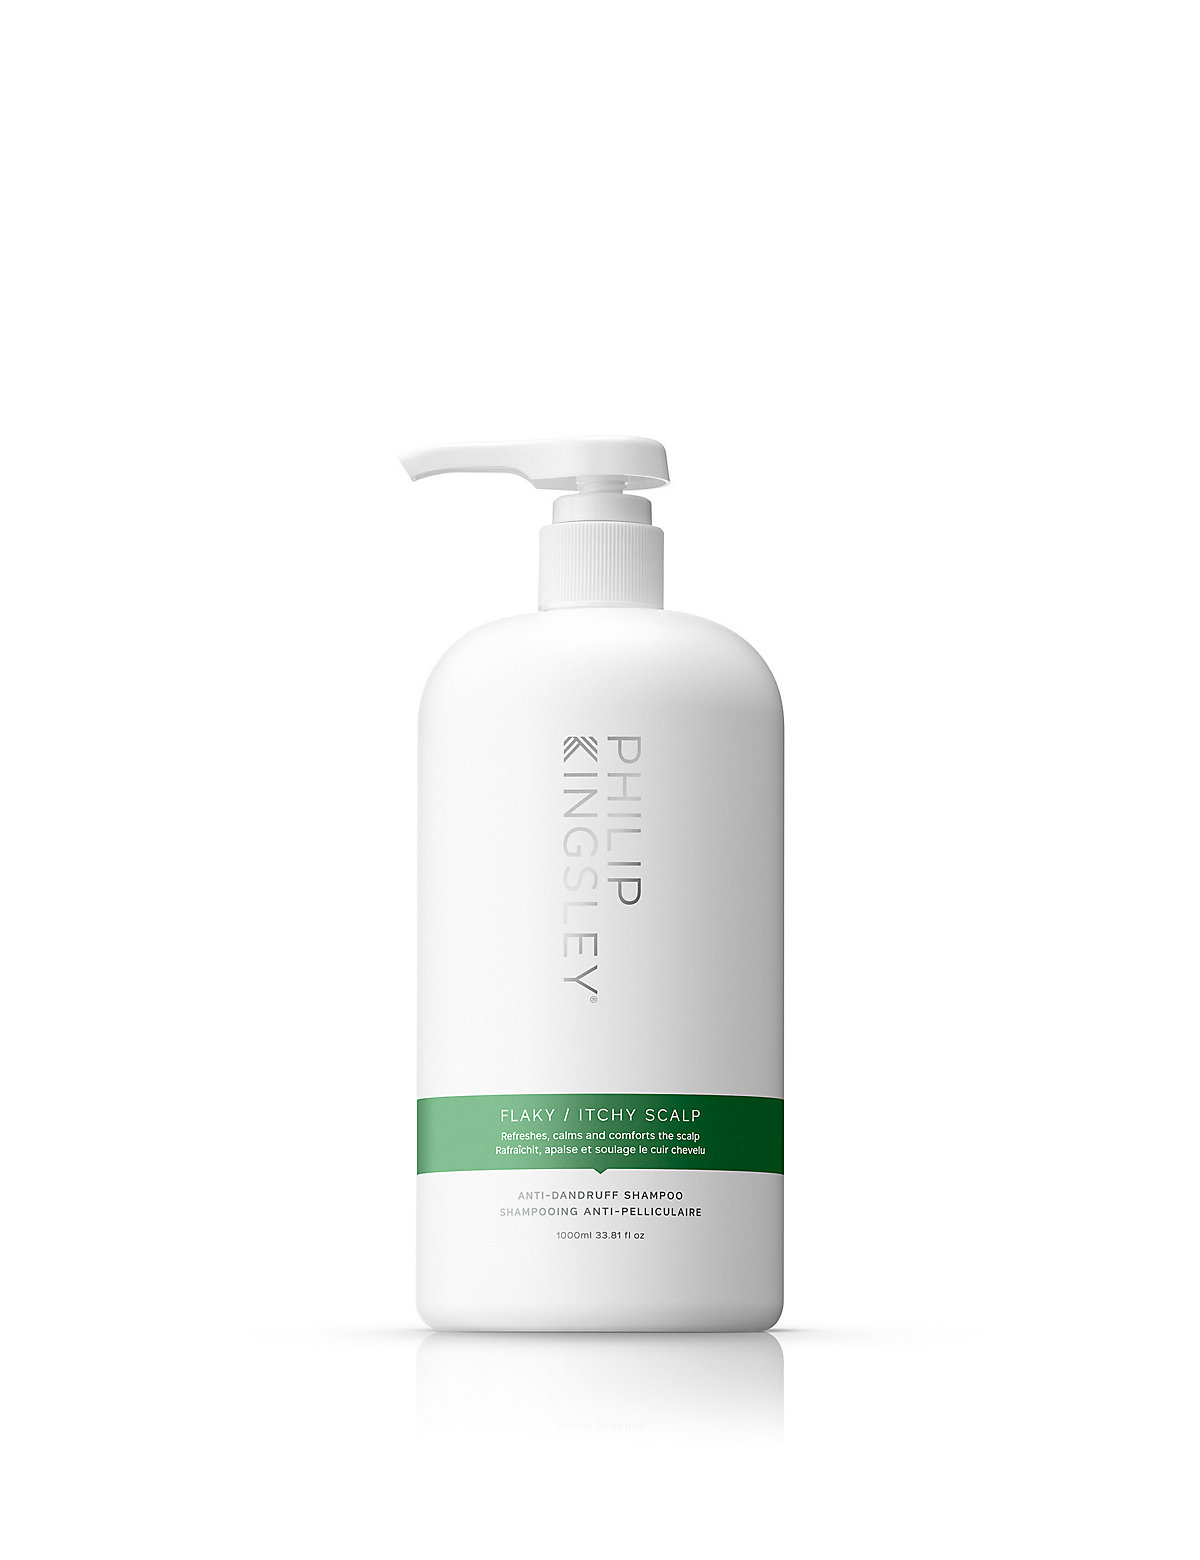 Philip Kingsley 1 Litre Flaky Itchy Scalp Shampoo - *Save 40% per ml